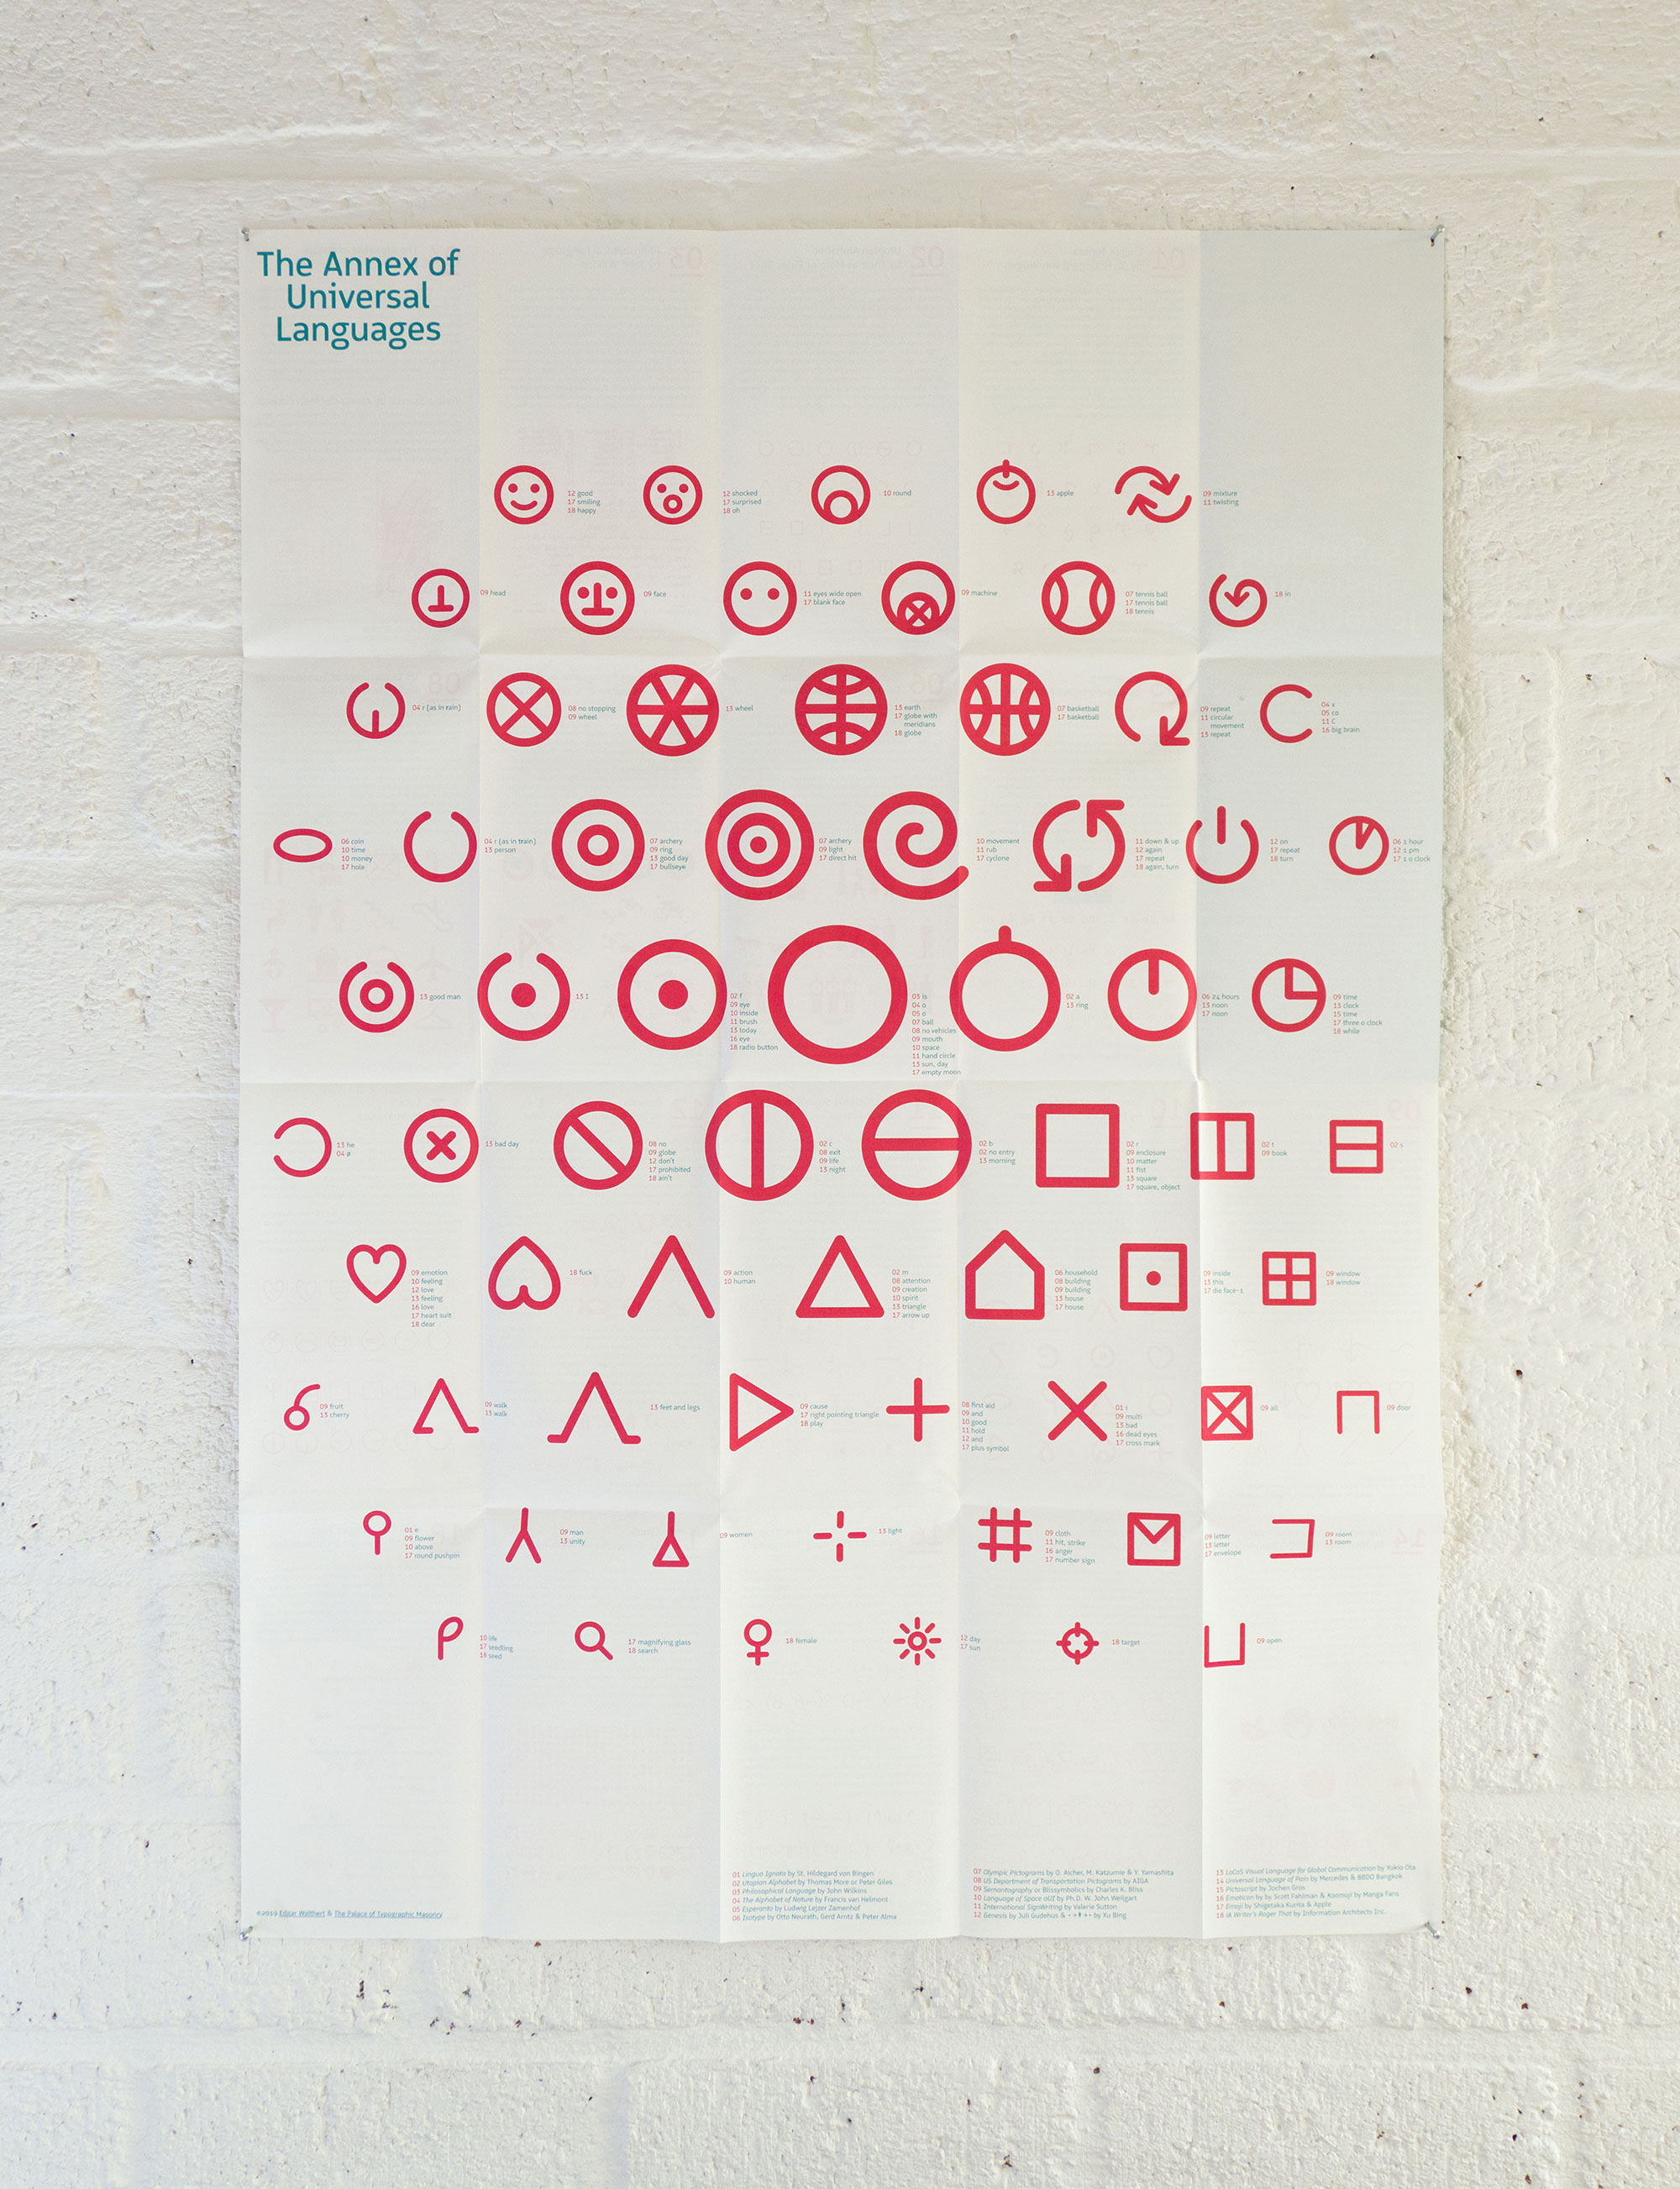 The Annex of Universal Languages Poster